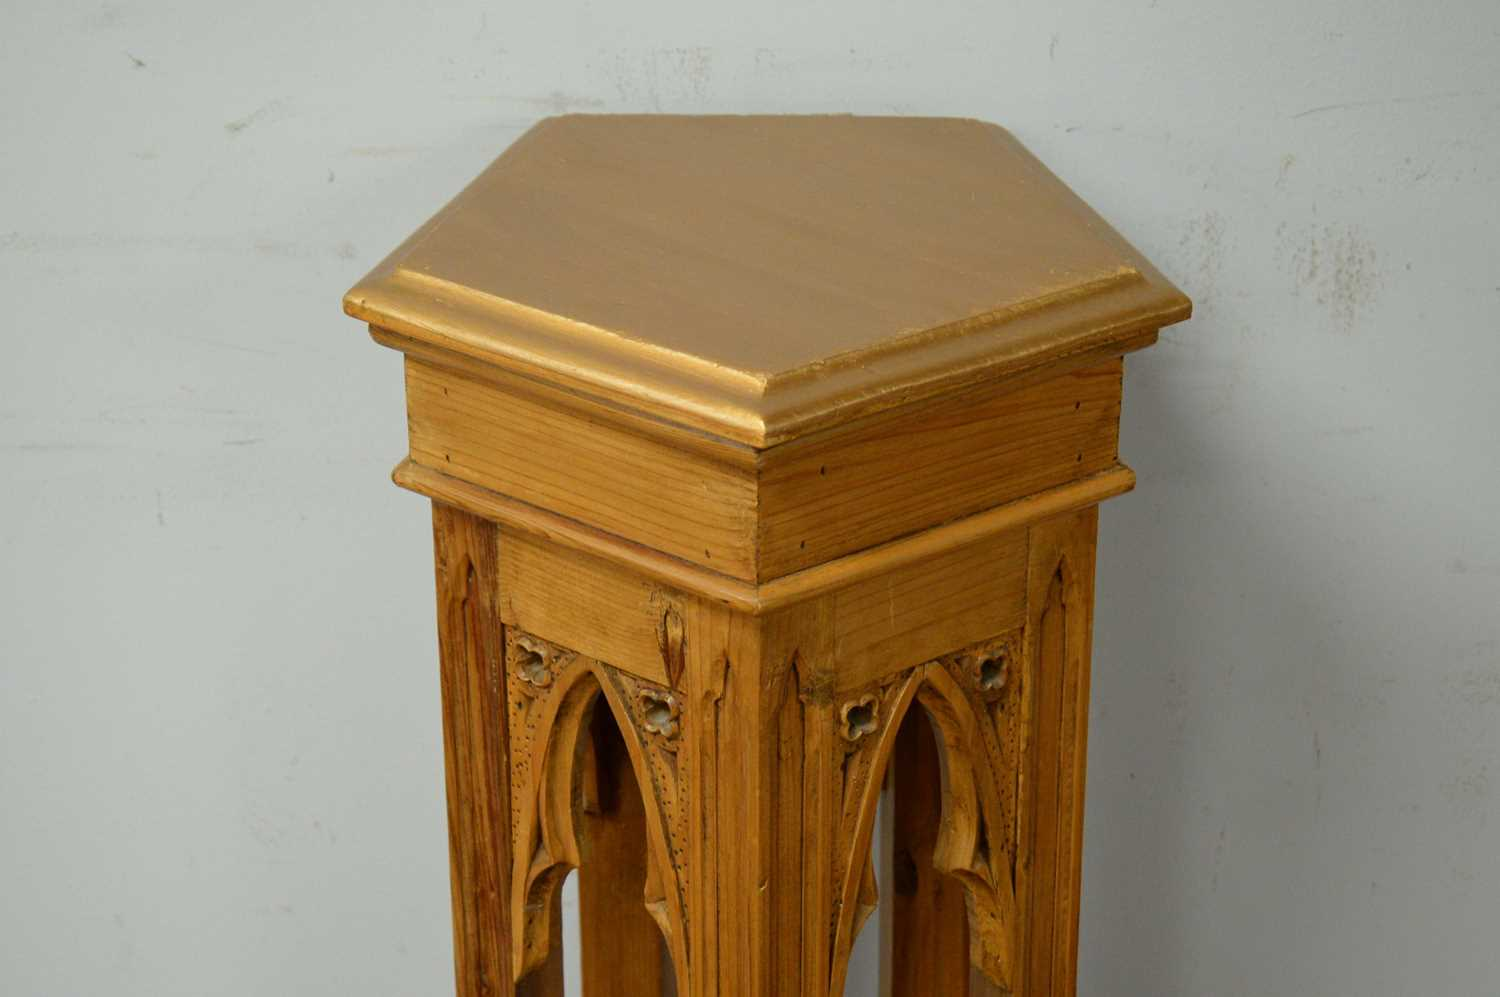 20th C gold-painted Gothic revival style jardiniere stand. - Image 3 of 3